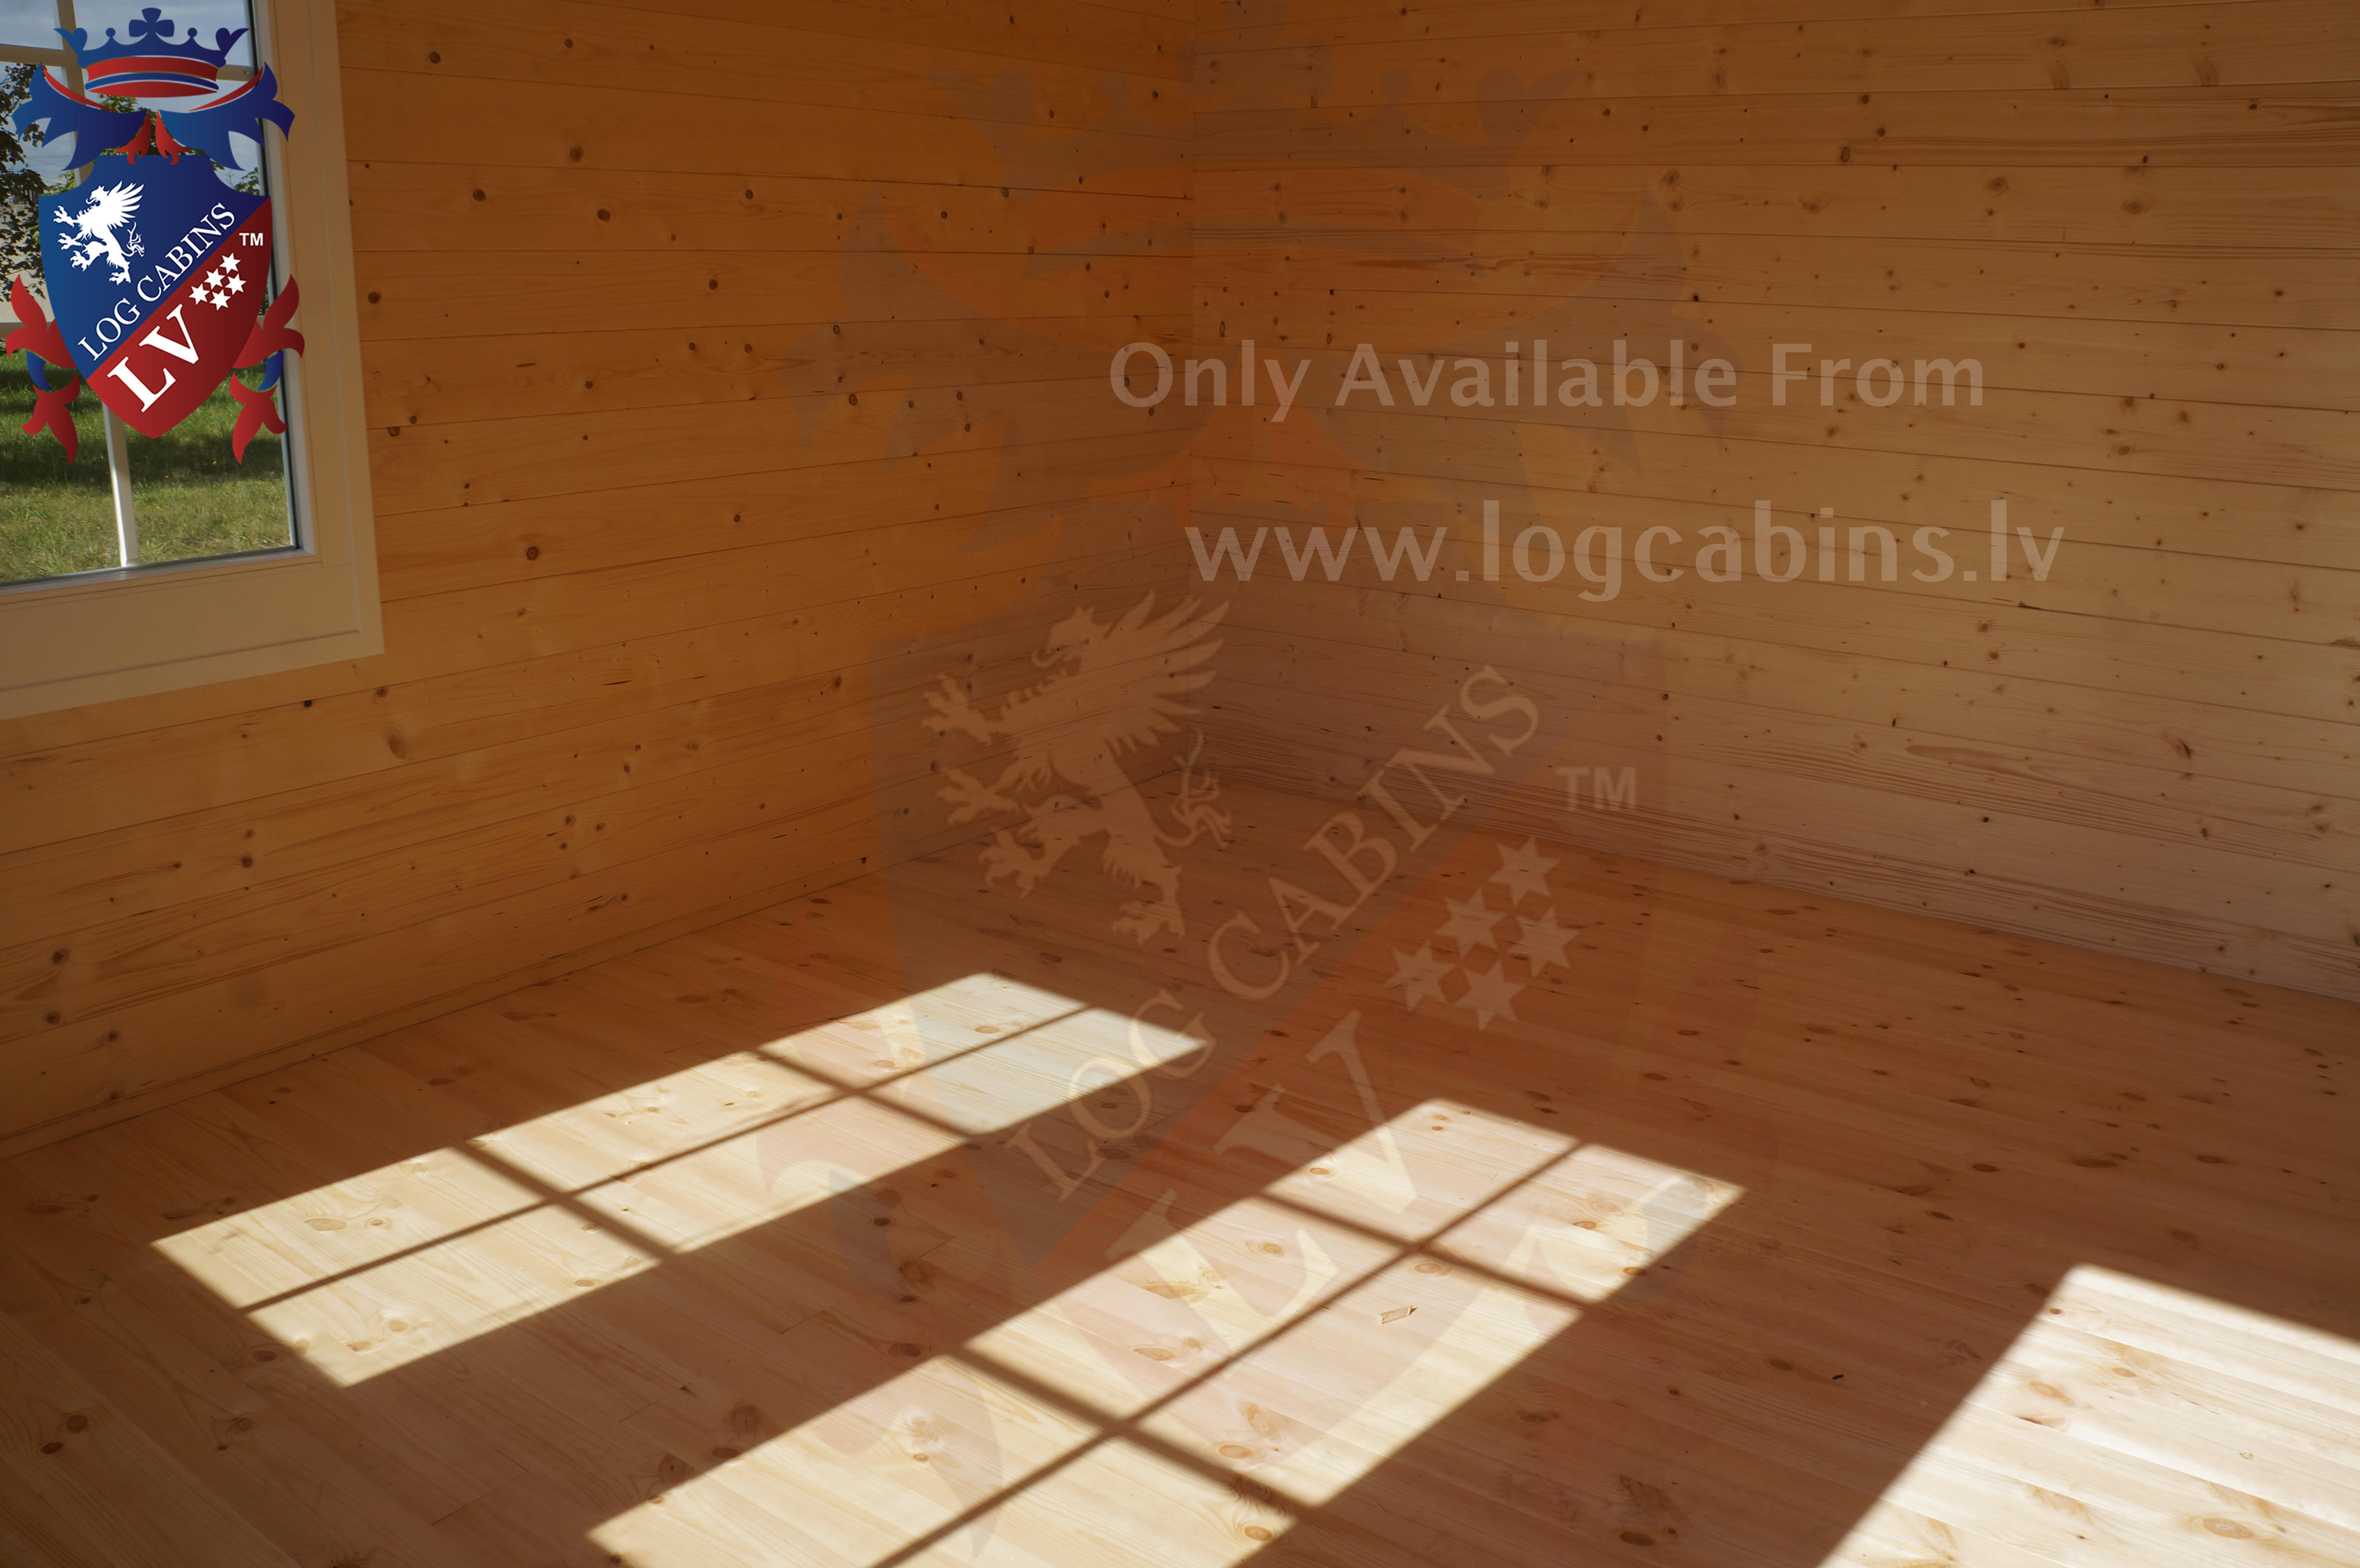 residential windows and doors quality windows log cabins 14